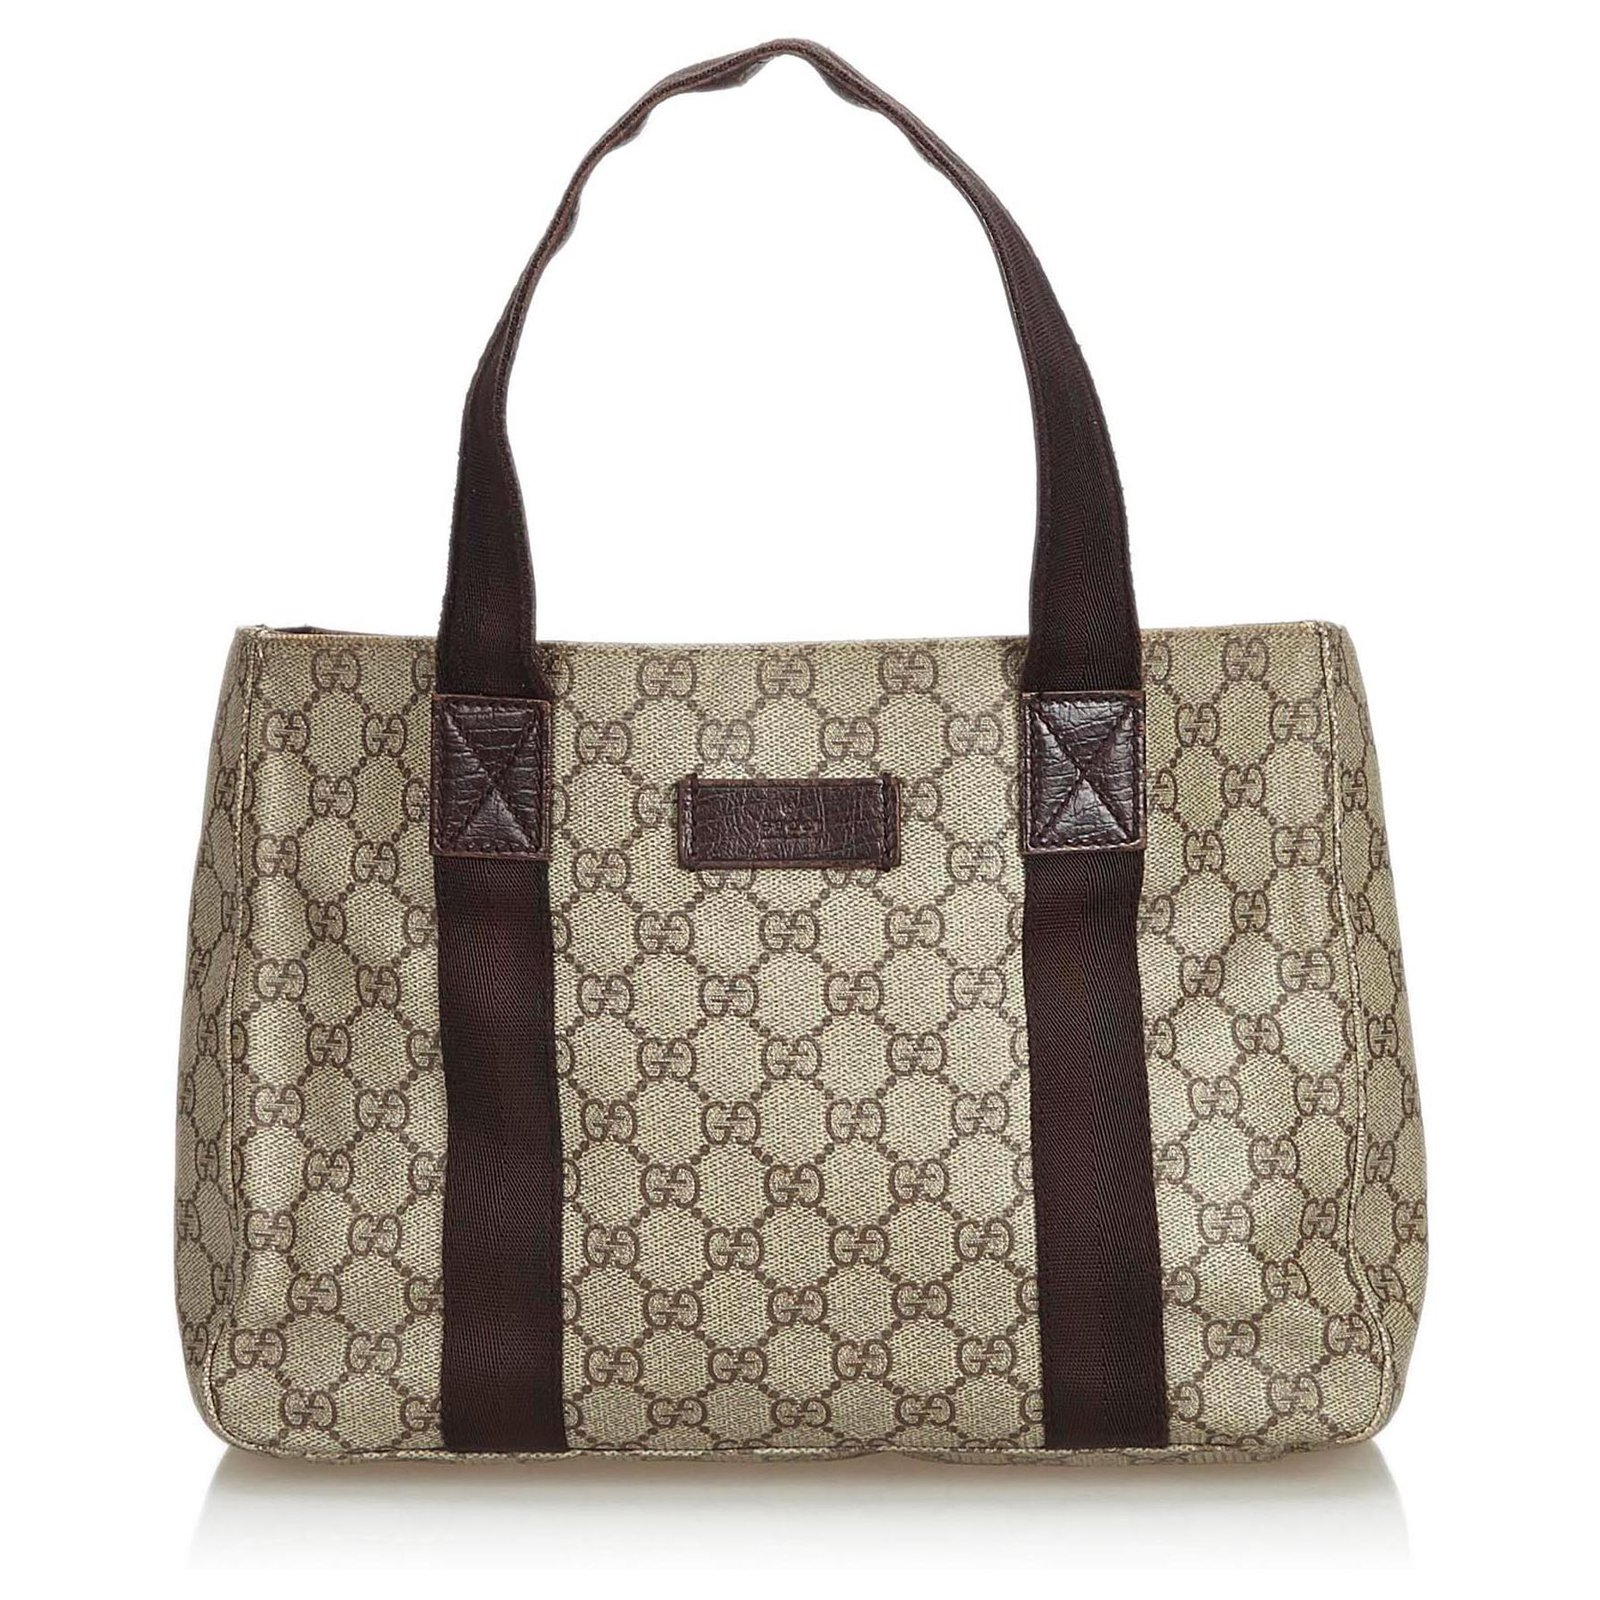 3683fe44ea2b Gucci Gucci Brown GG Supreme Coated Canvas Tote Bag Totes Leather,Other, Cloth,